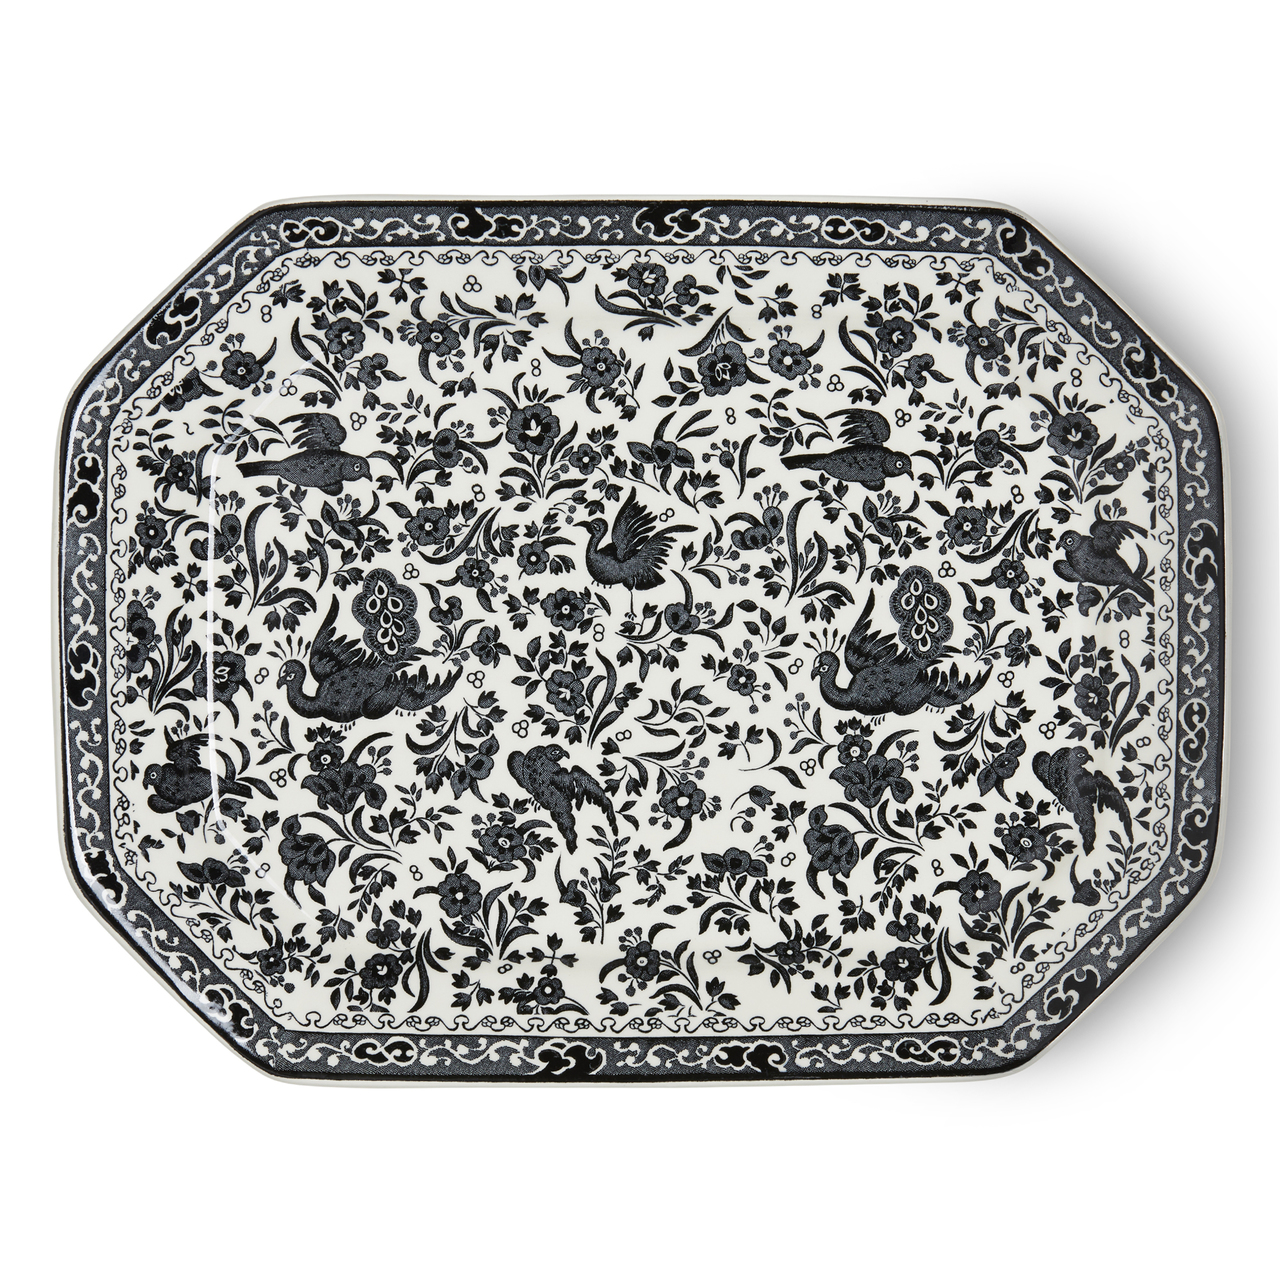 Burleigh Black Regal Peacock | Beautiful china dinnerware to adorn your tablescapes and add to your Sasha Nicholas wedding & gift registry